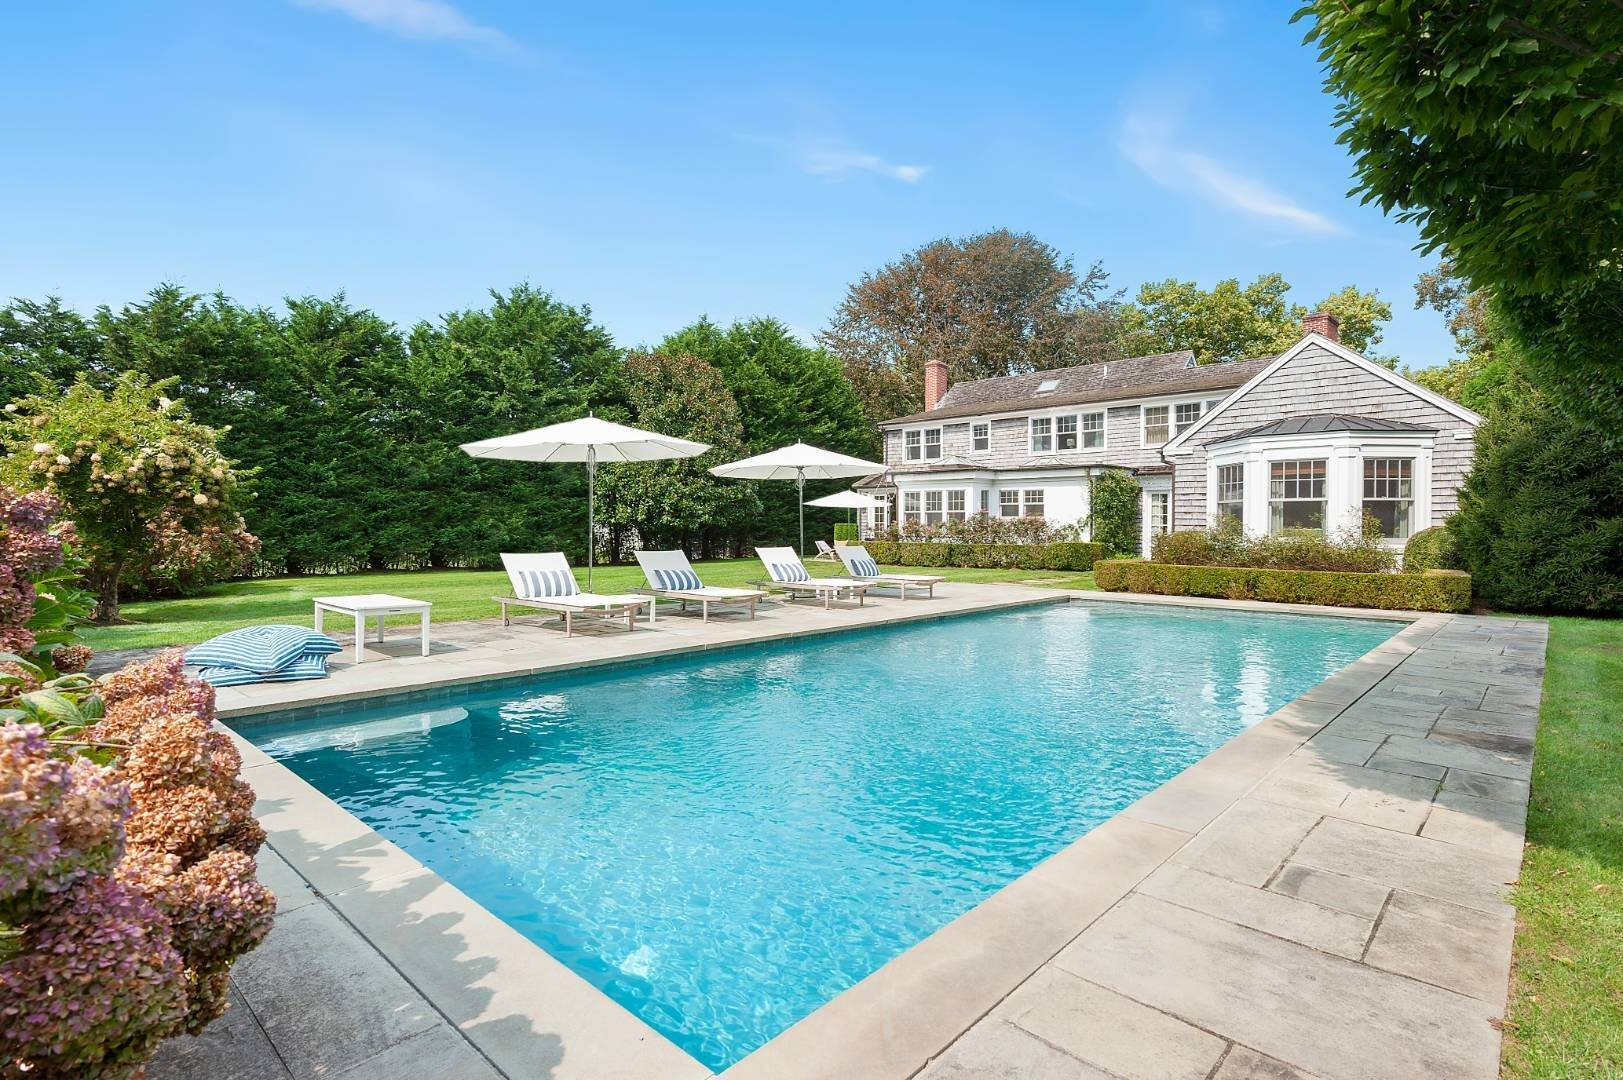 Single Family Home for Sale at Southampton Village Traditional 84 Anns Lane, Southampton, NY 11968